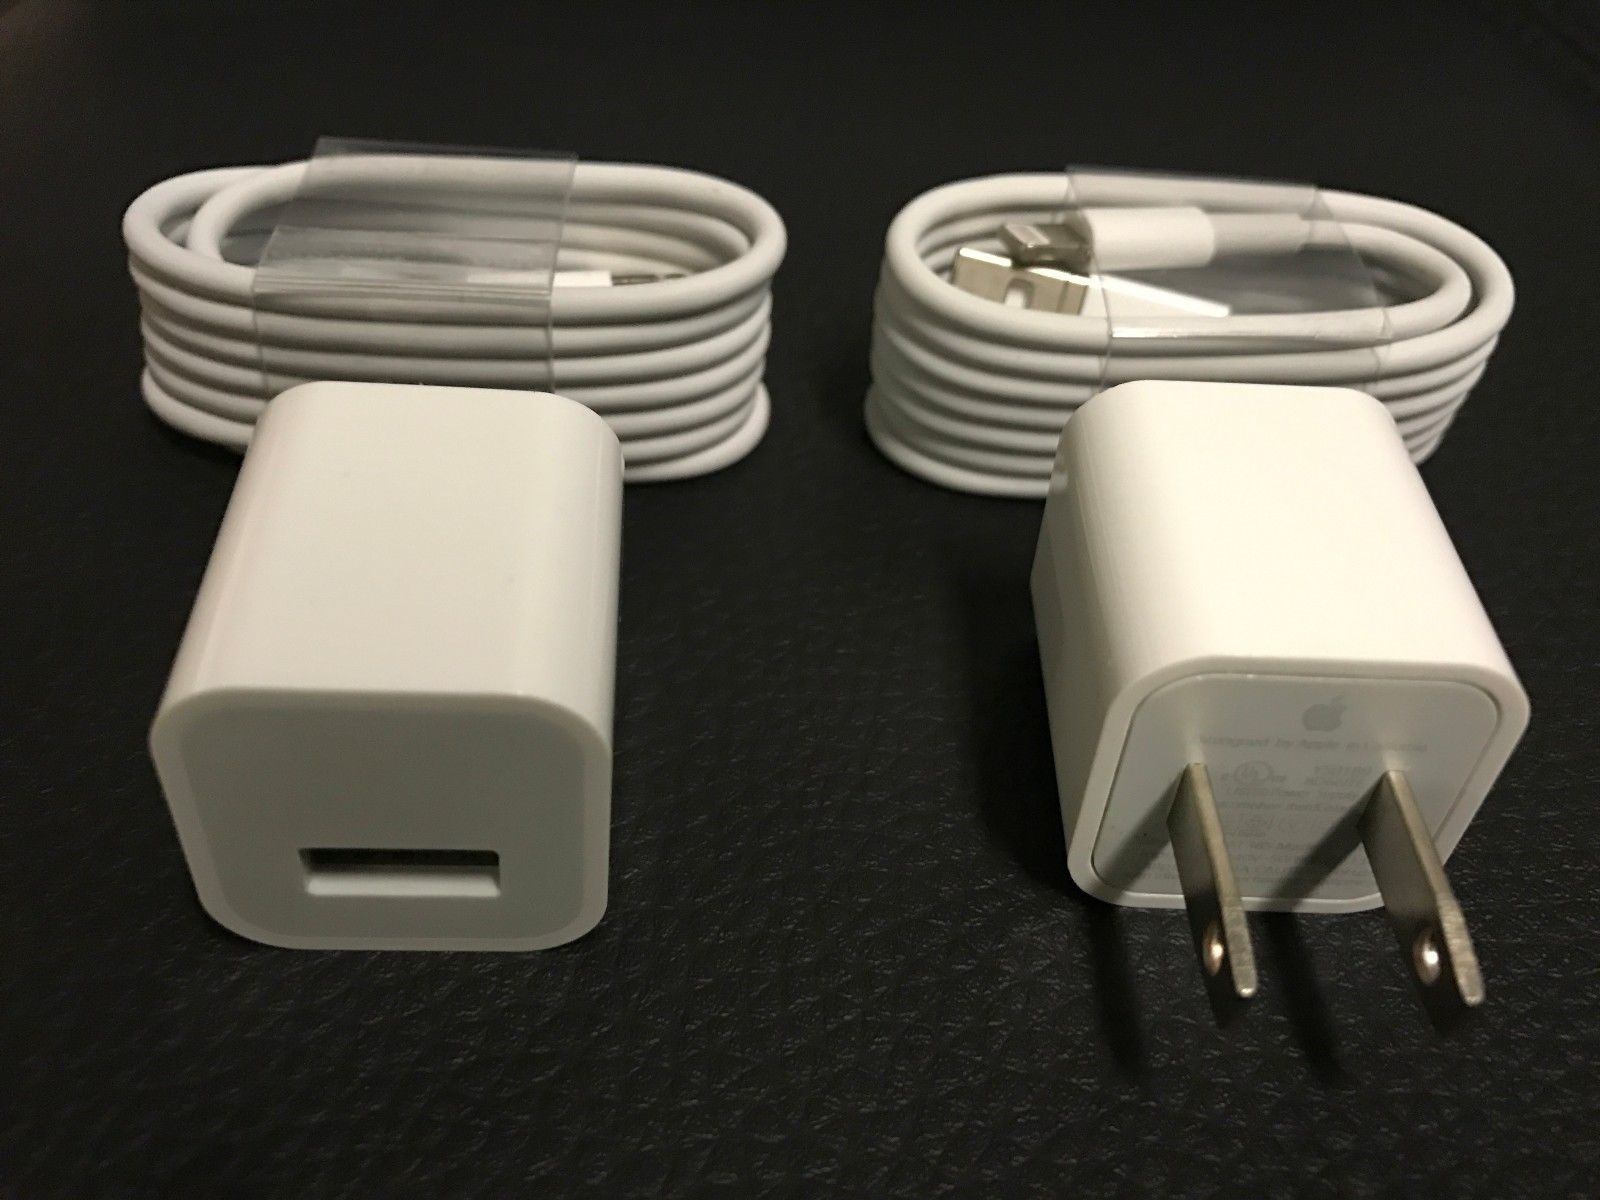 OEM Original Wall Charger Adapter USB Lightning Cable for 5s/6s/7s